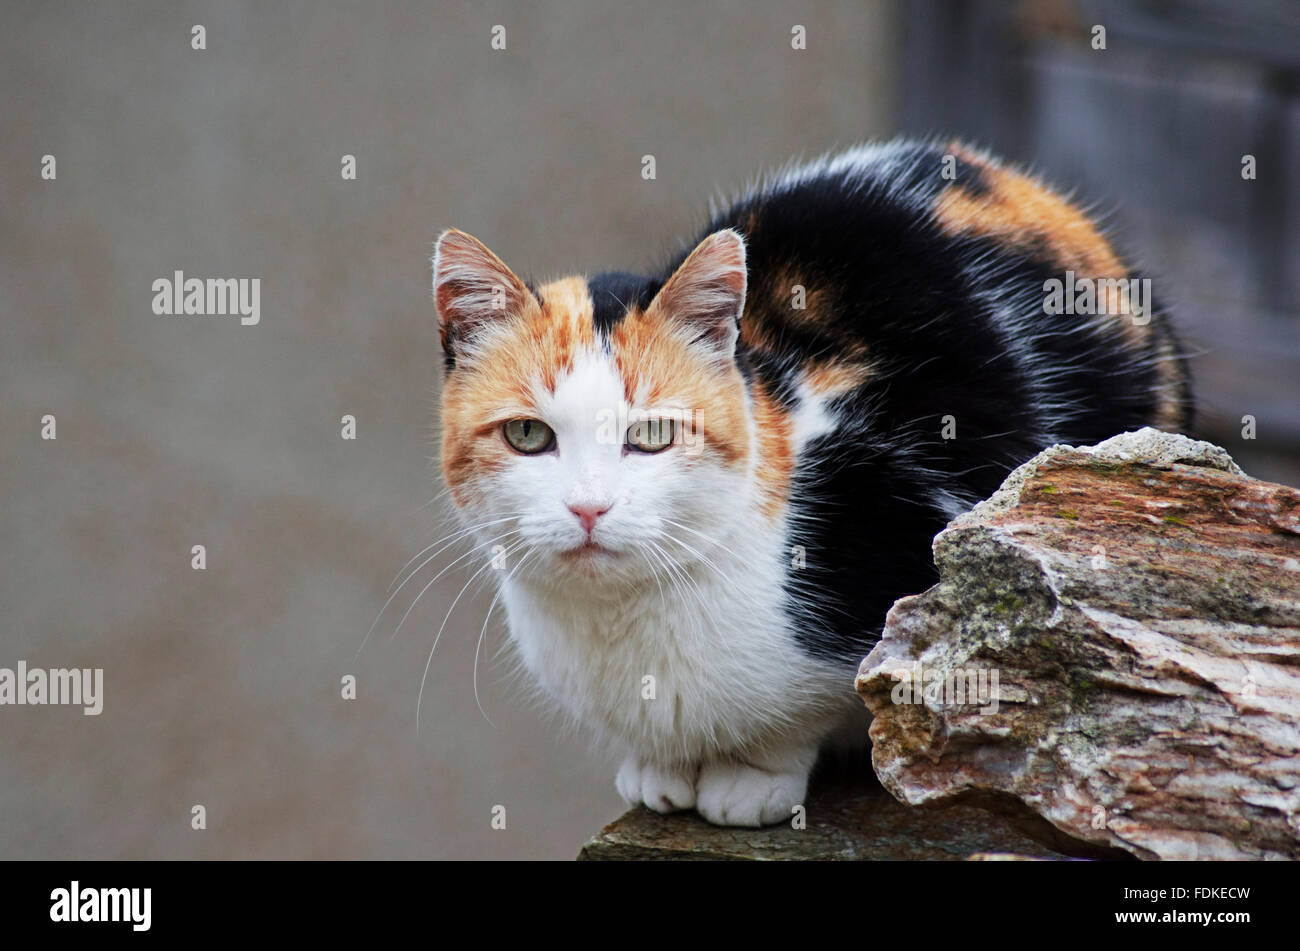 Calico cat sitting on a wall and looking at camera - Stock Image